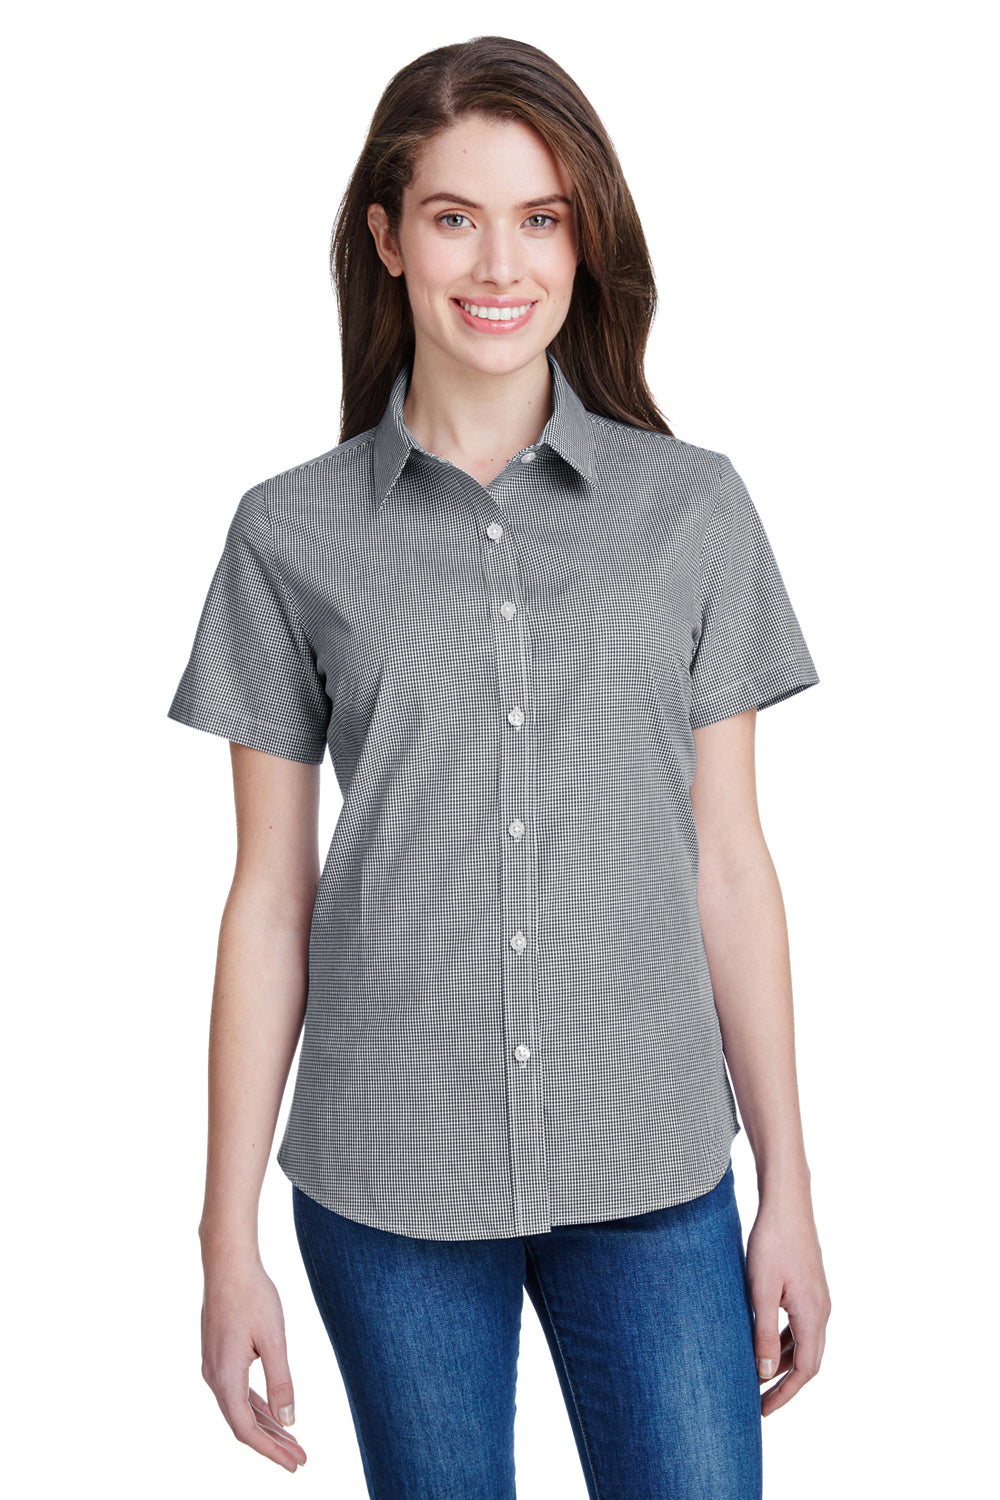 Artisan Collection RP321 Womens Microcheck Gingham Short Sleeve Button Down Shirt Black/White Front